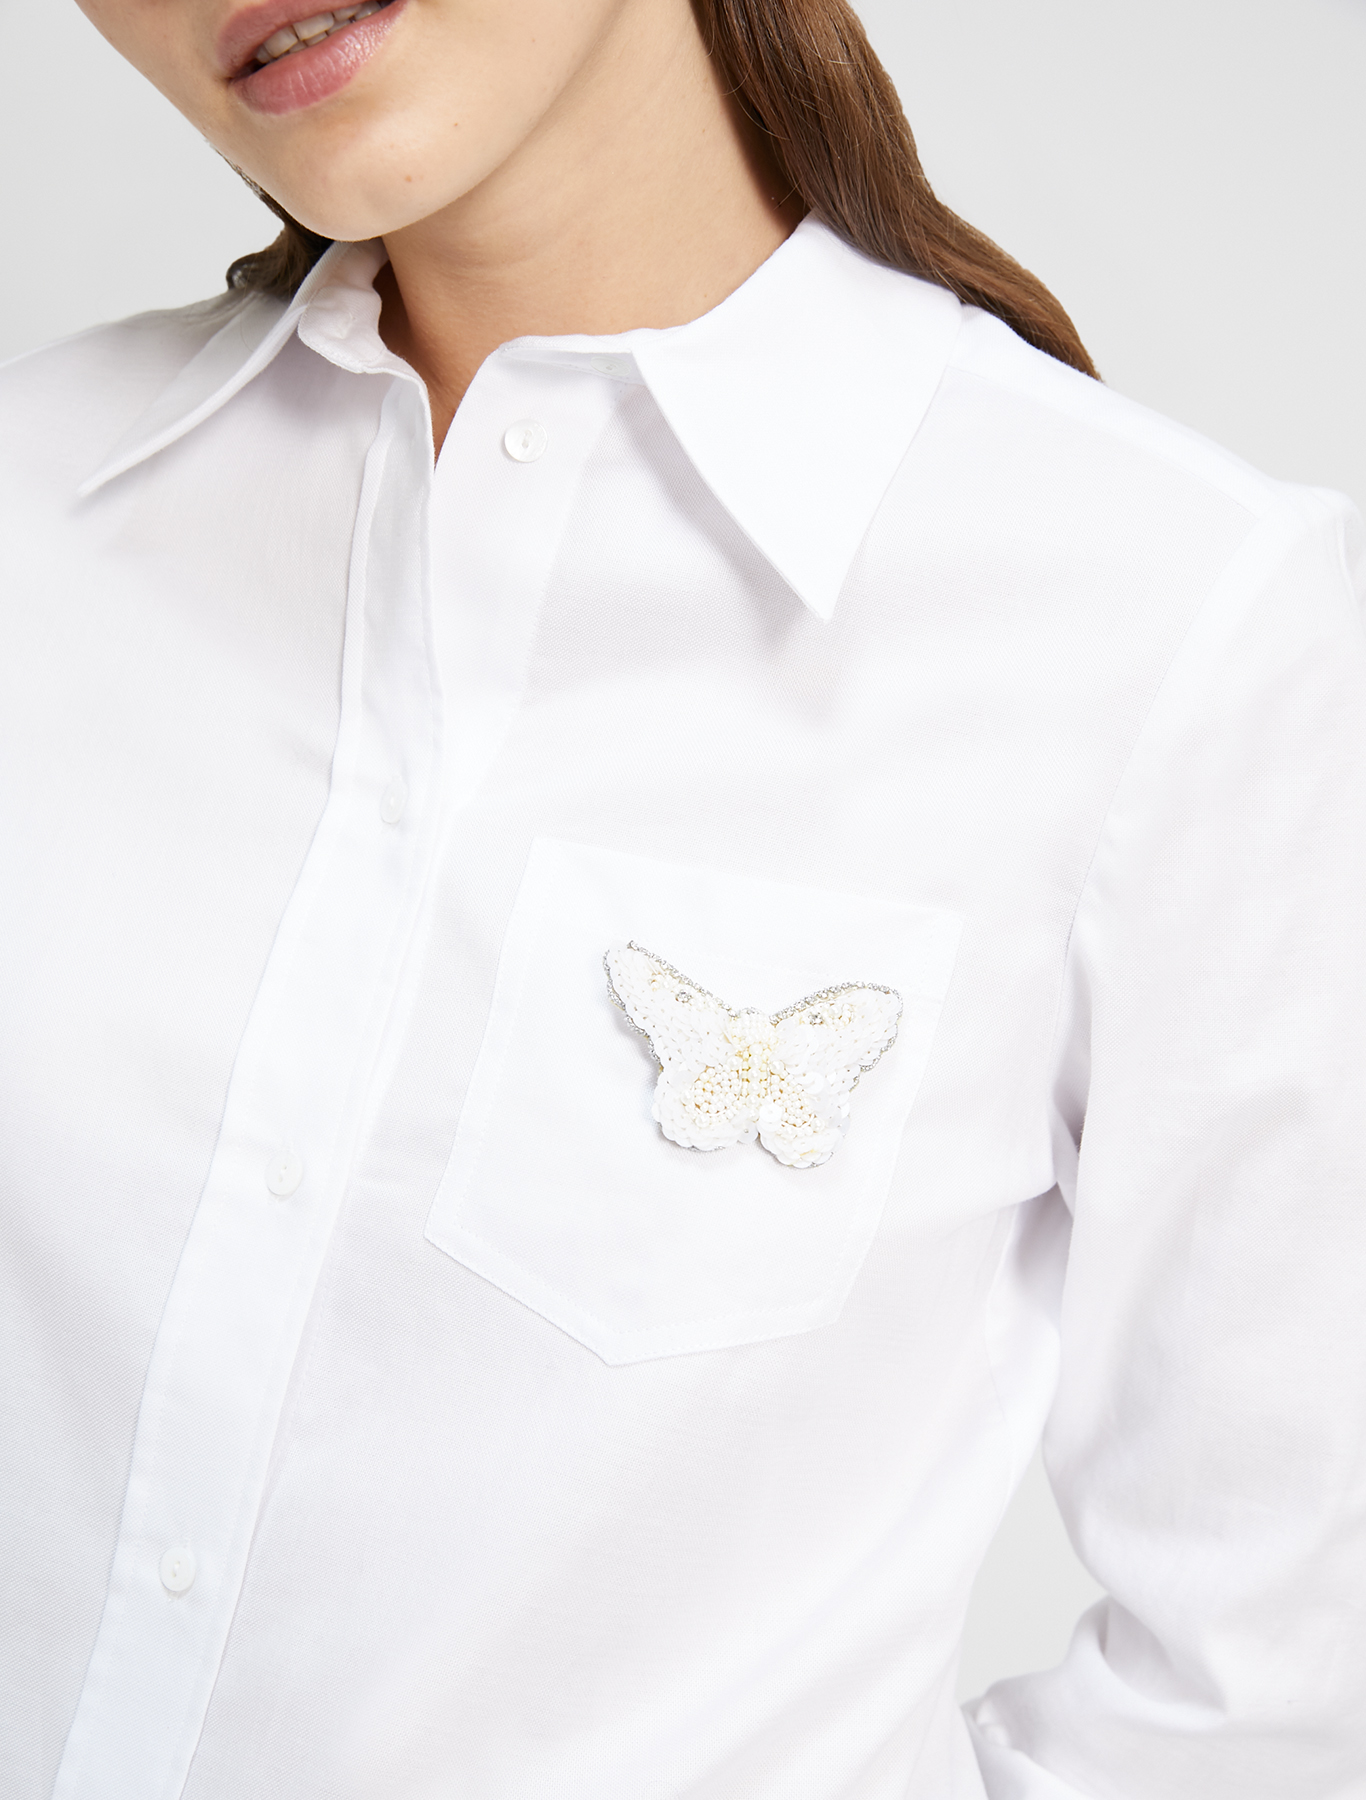 Oxford cotton shirt - white - pennyblack